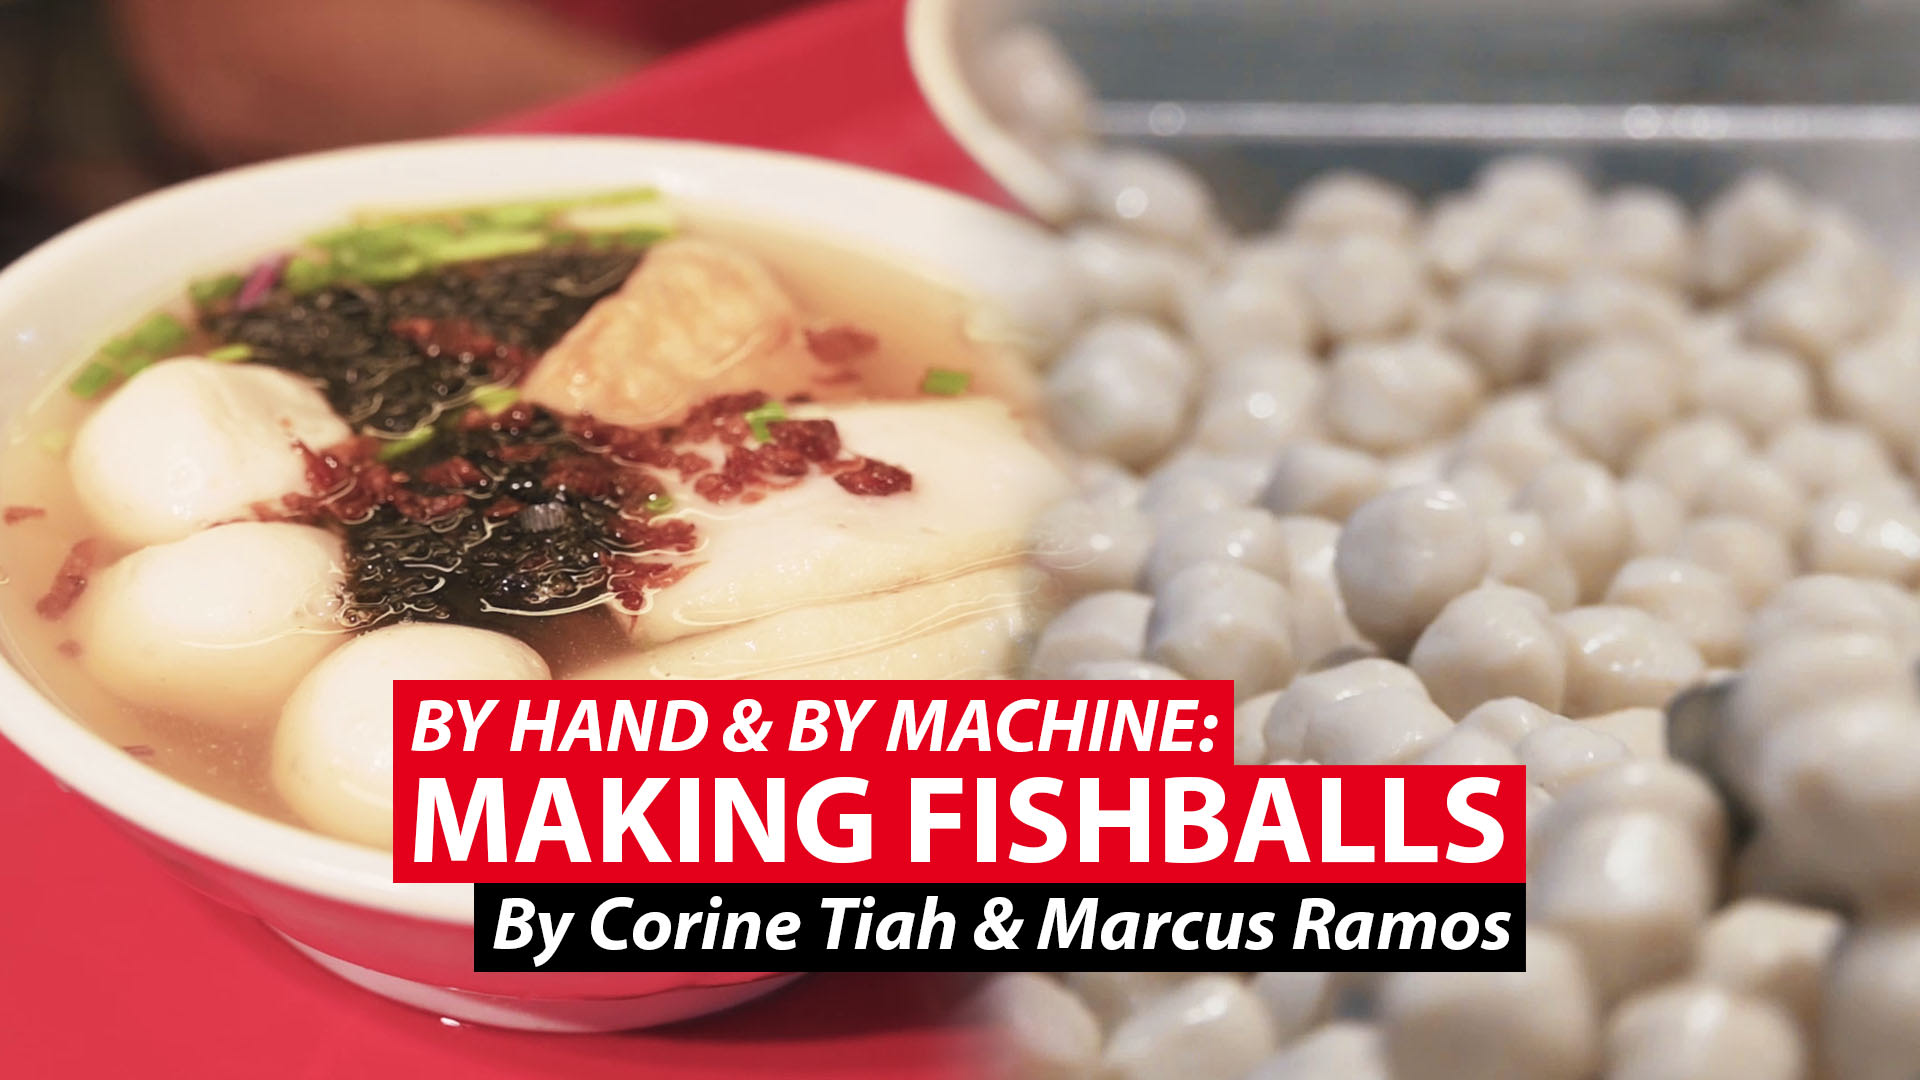 By hand & by machine: Making fishballs